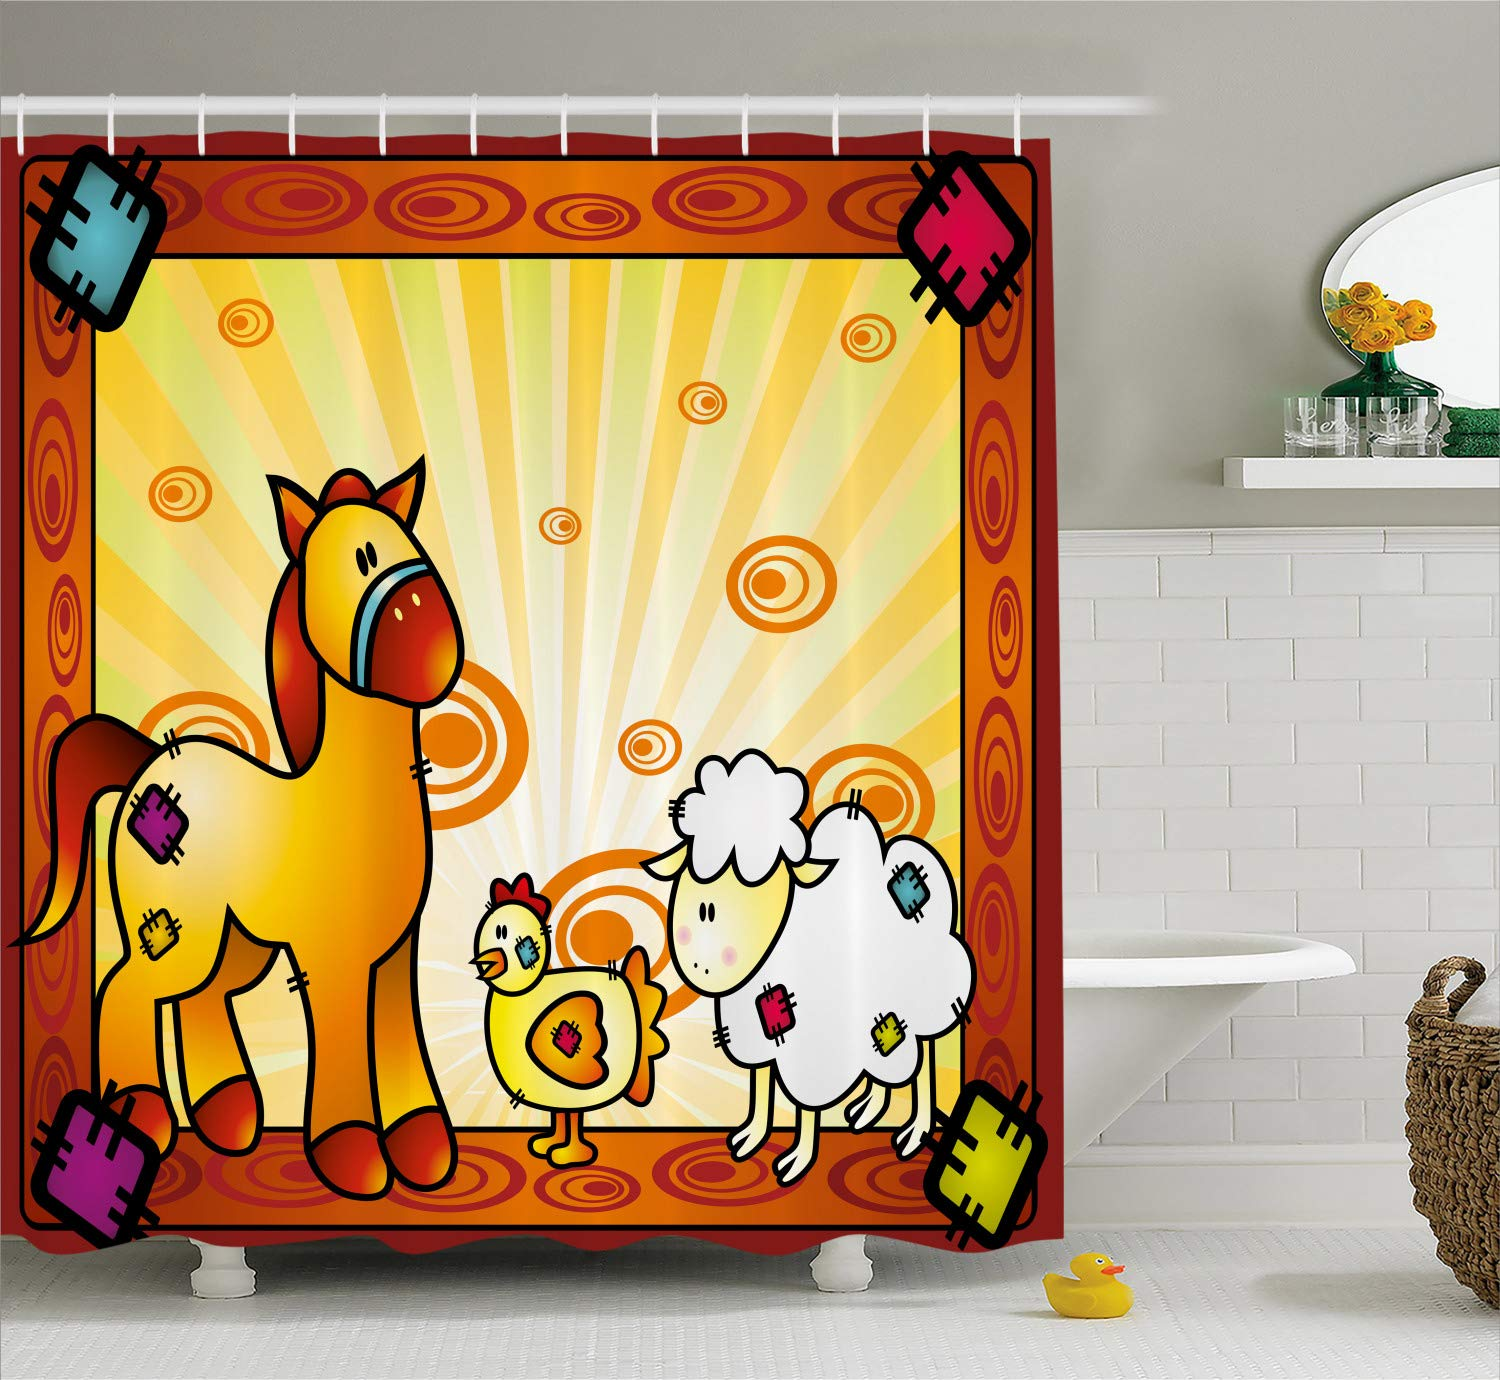 Ambesonne Farm Shower Curtain Animal Friend Chicken Sheep And Horse With Patch Motif Zoo Joyful Cartoon Print Cloth Fabric Bathroom Decor Set Hooks